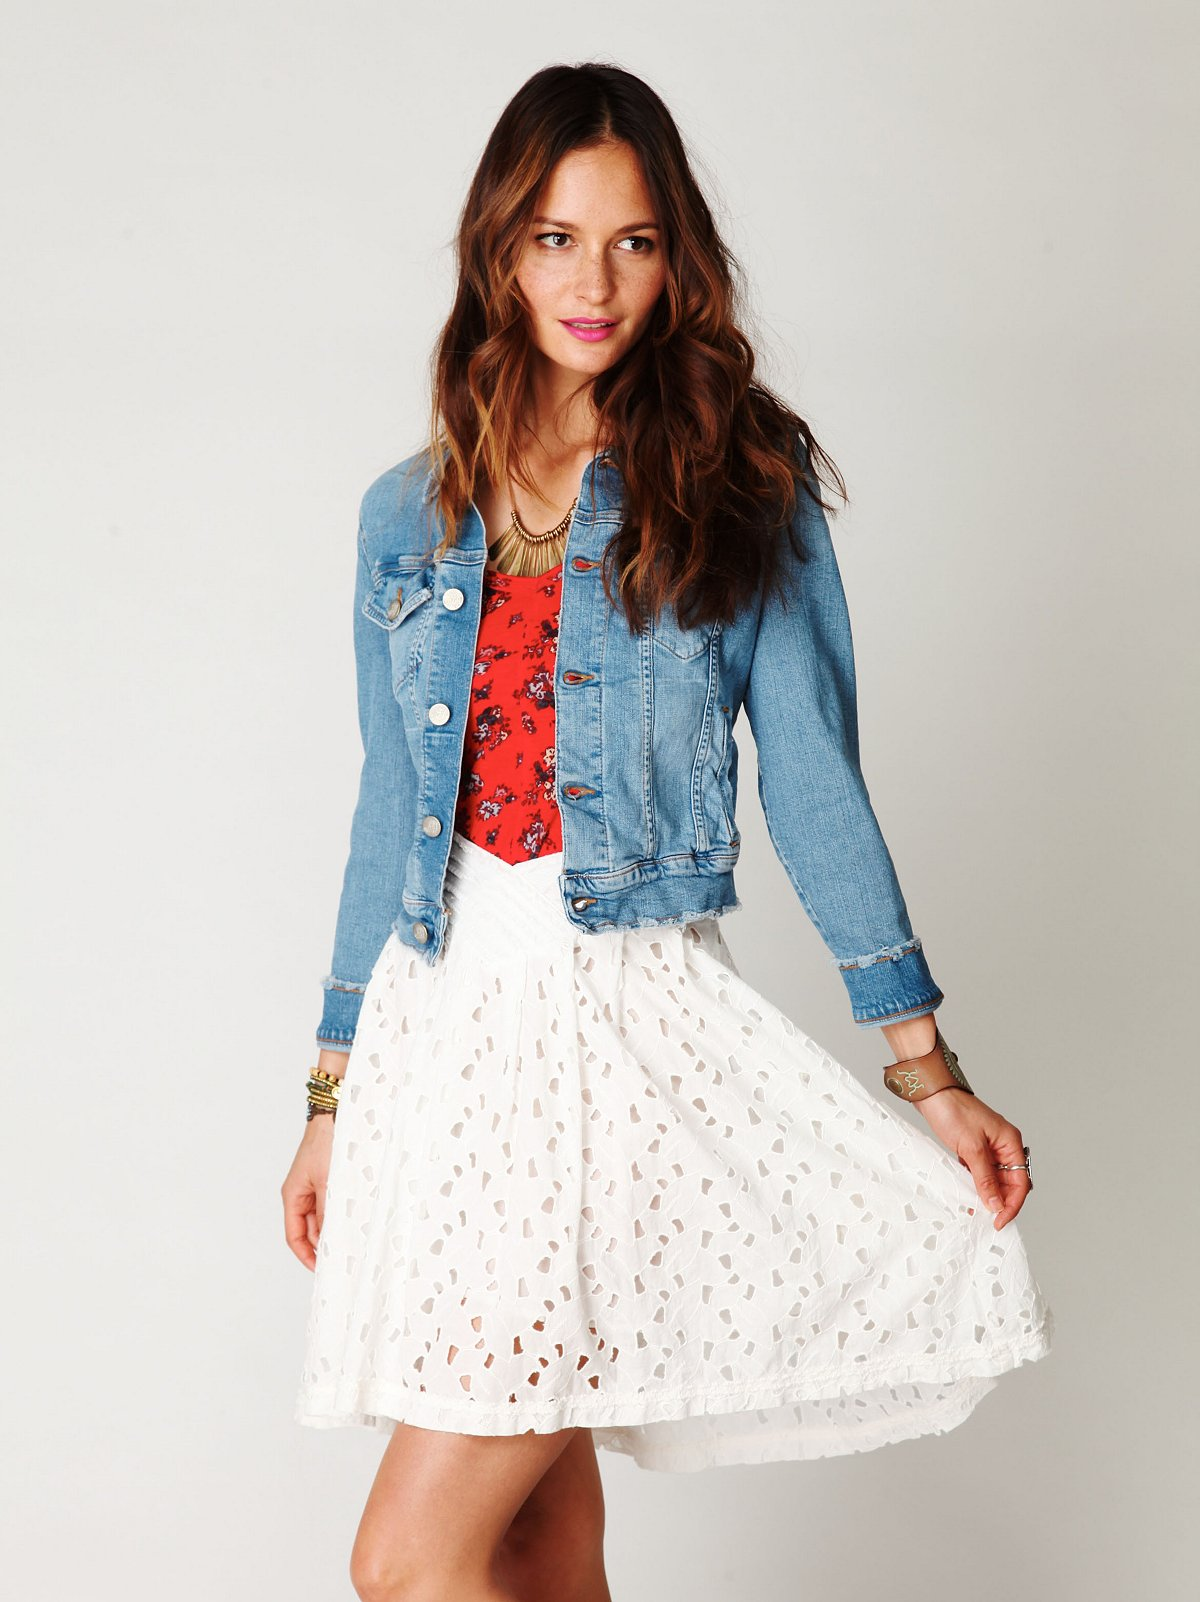 FP New Romantics Eyelet Field Day Skirt